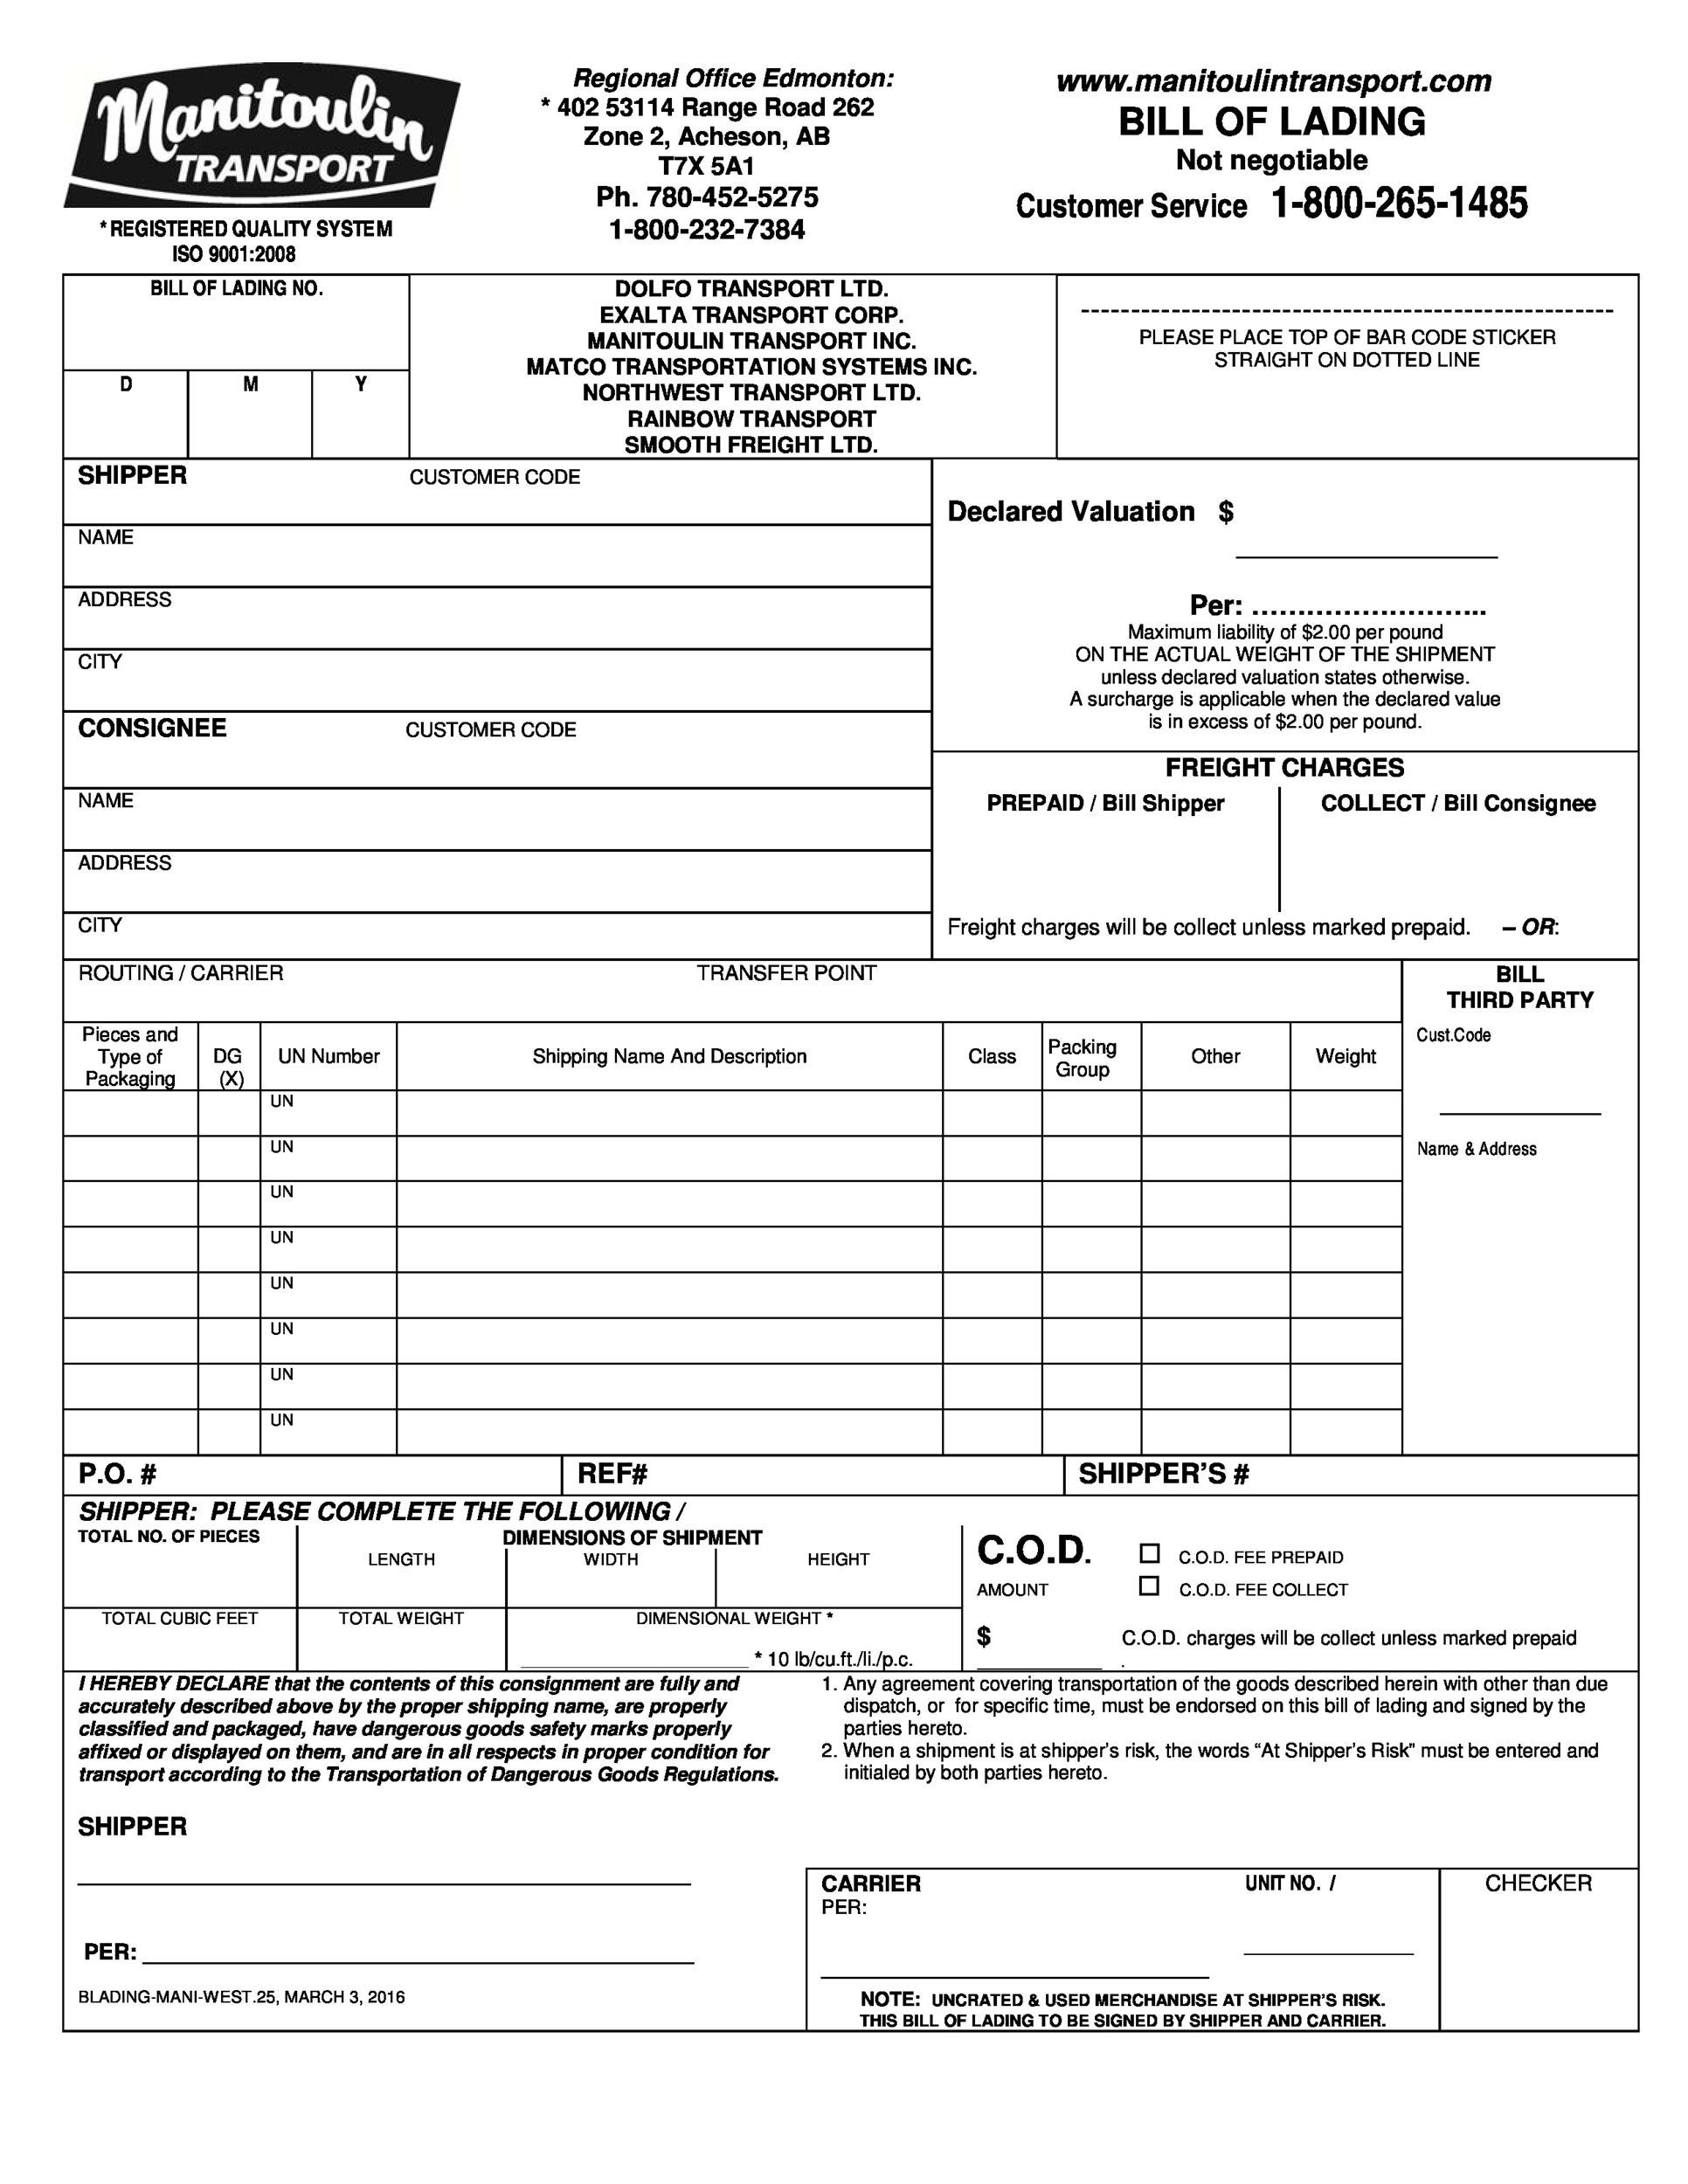 40 Free Bill of Lading Forms Templates Template Lab – Bill of Lading Template Word